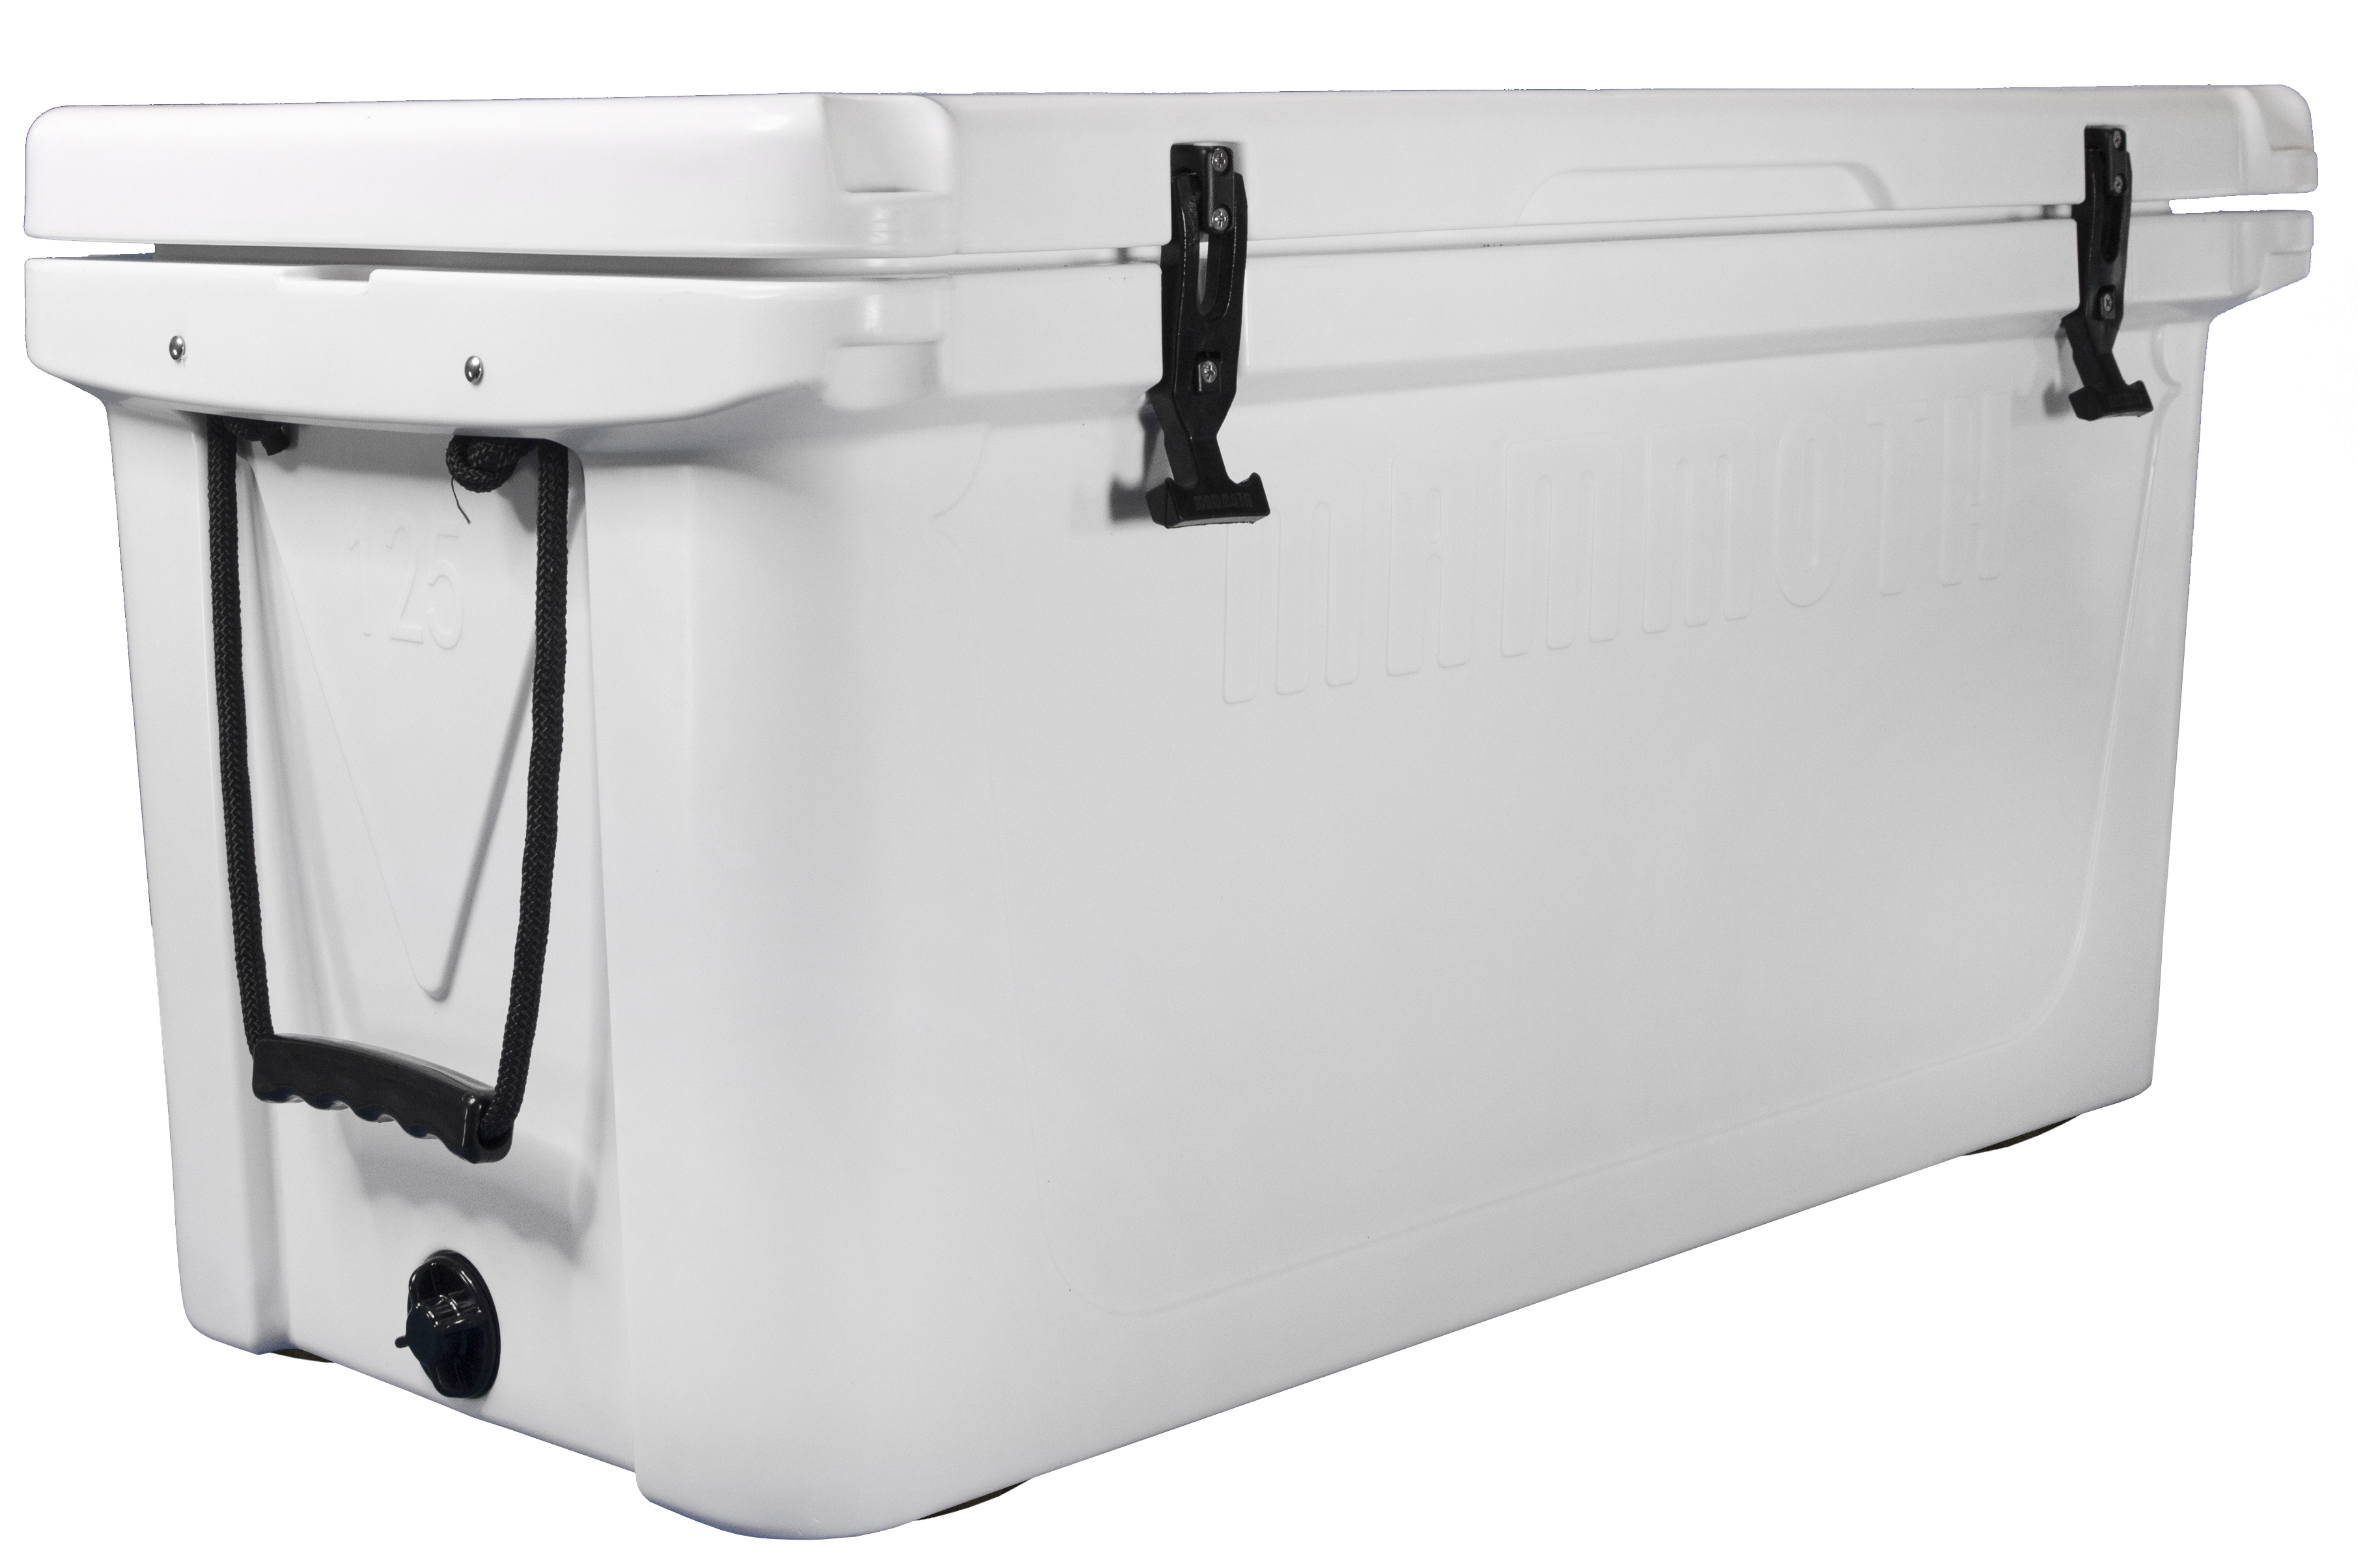 Mammoth Coolers Ranger Cooler Up To 23 Off W Free Shipping